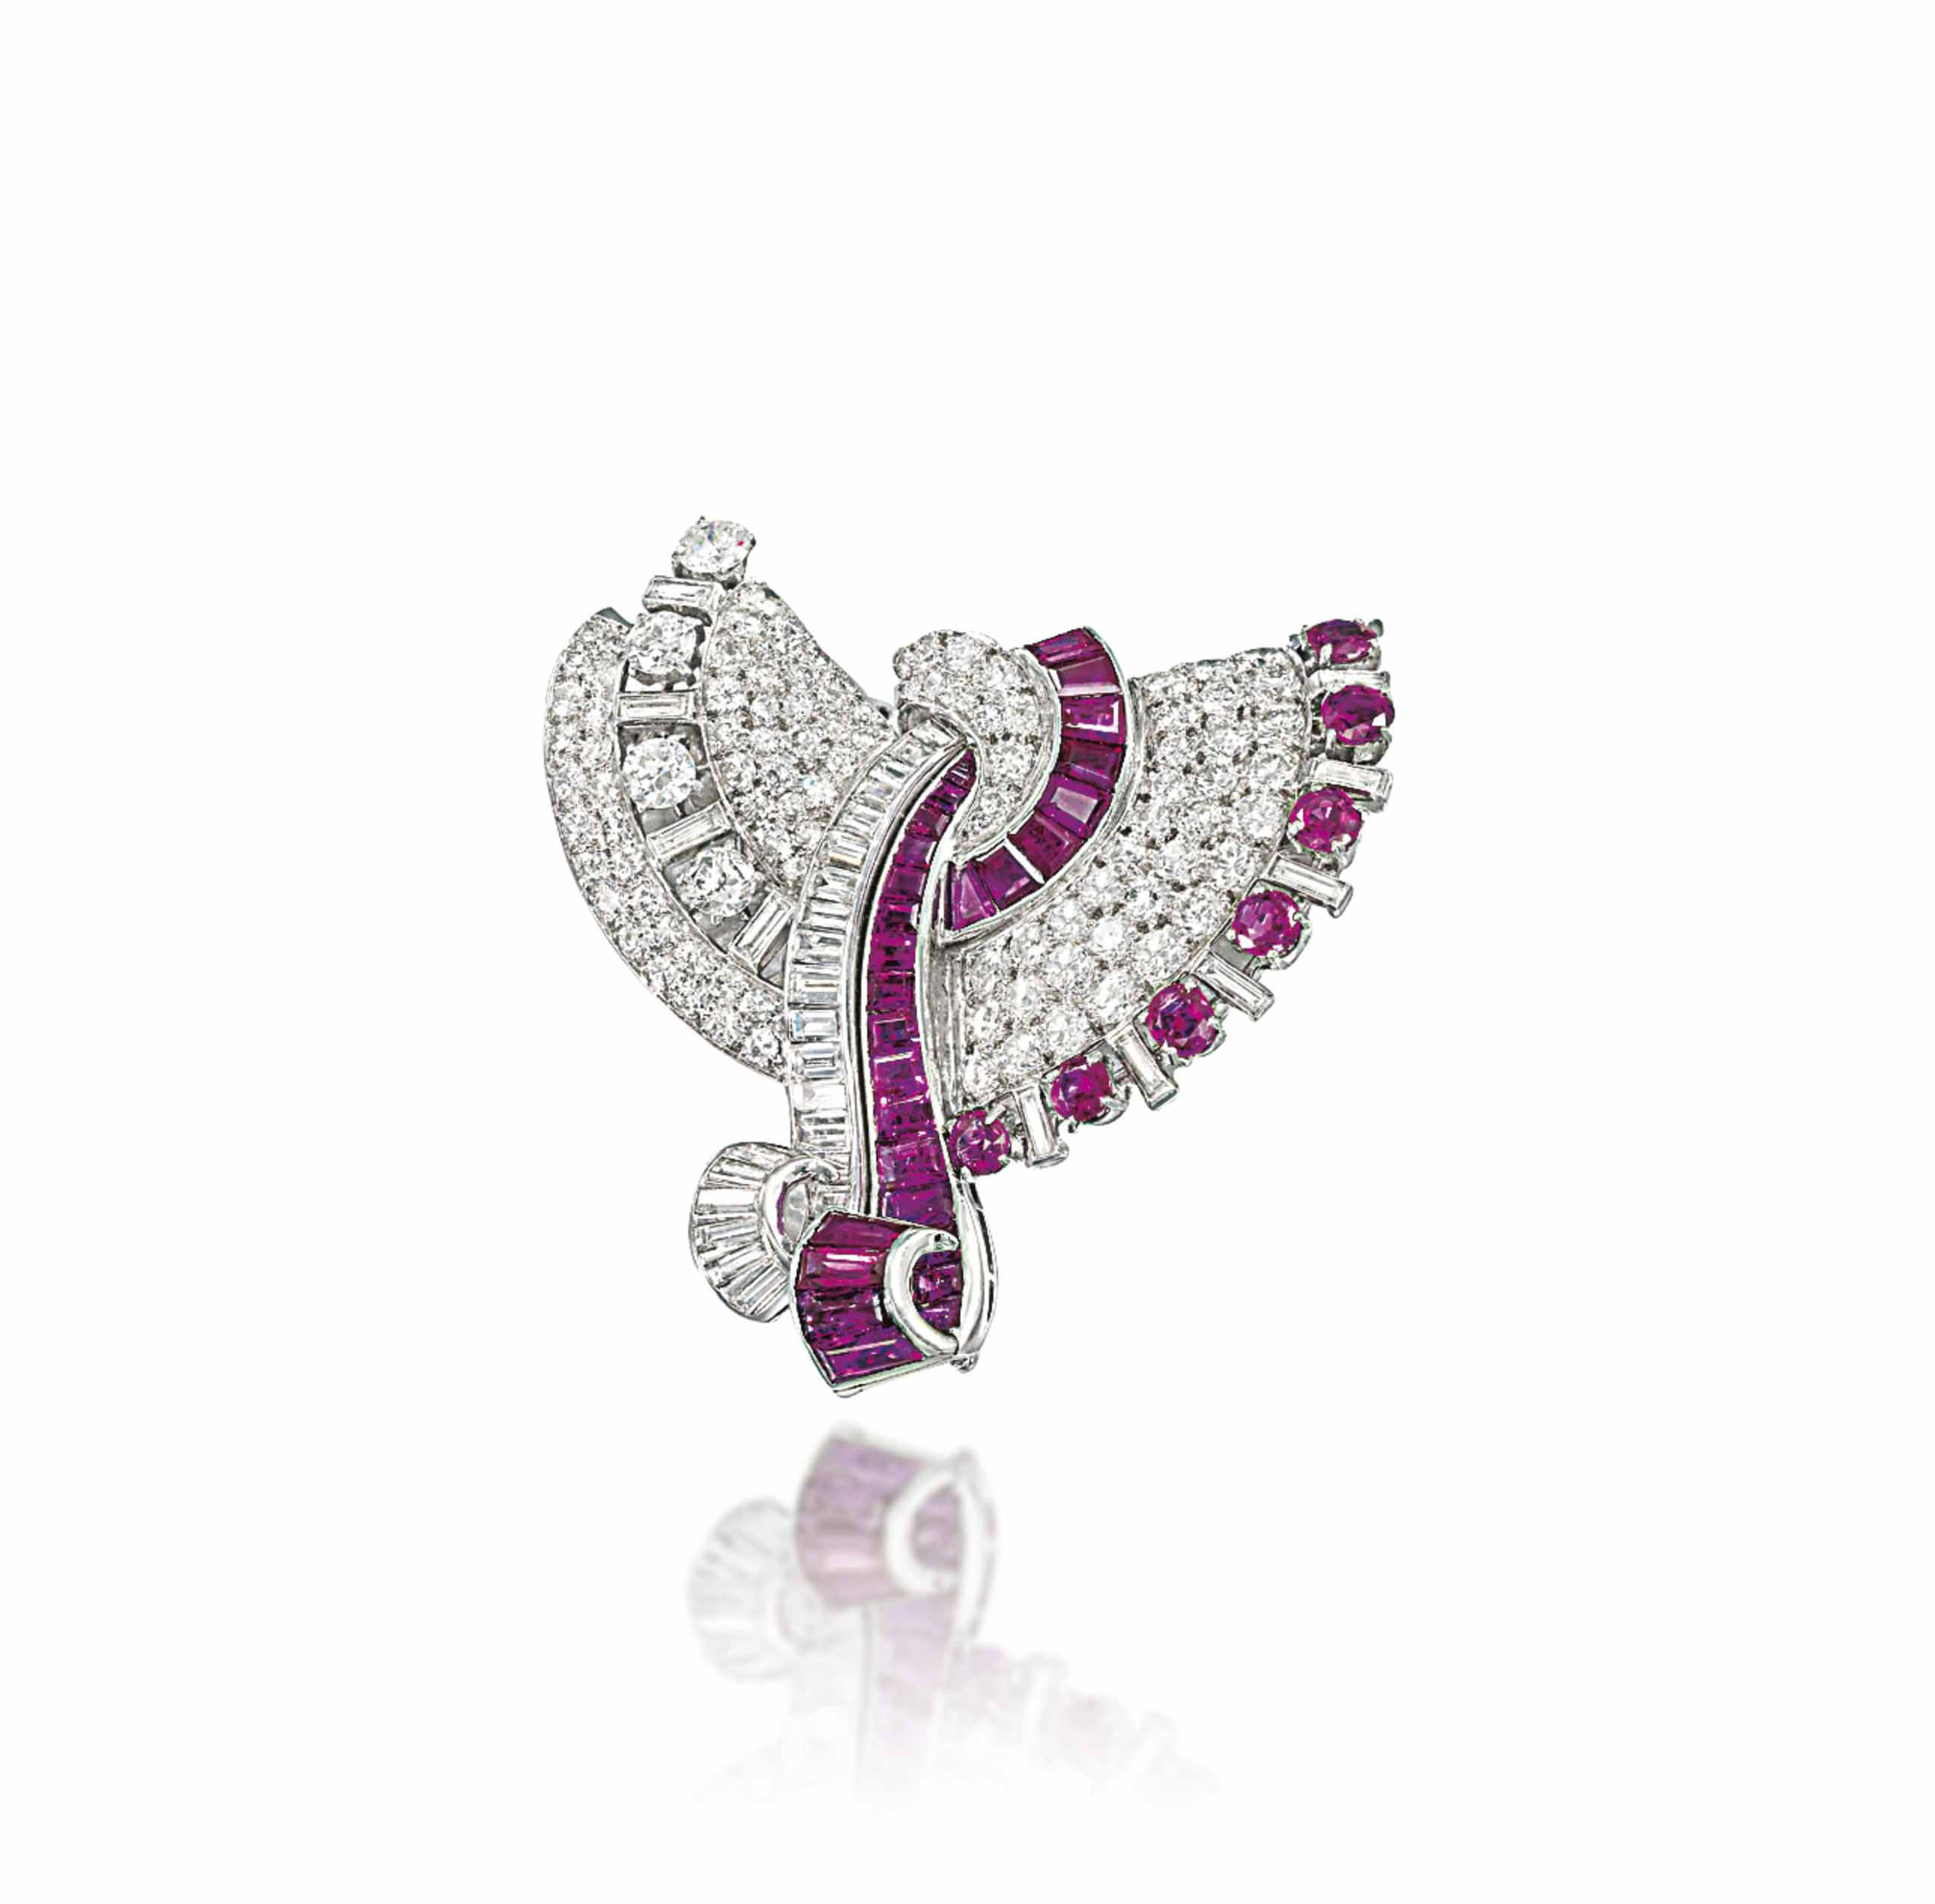 AN ART DECO RUBY AND DIAMOND DOUBLE CLIP BROOCH, BY DRAYSON